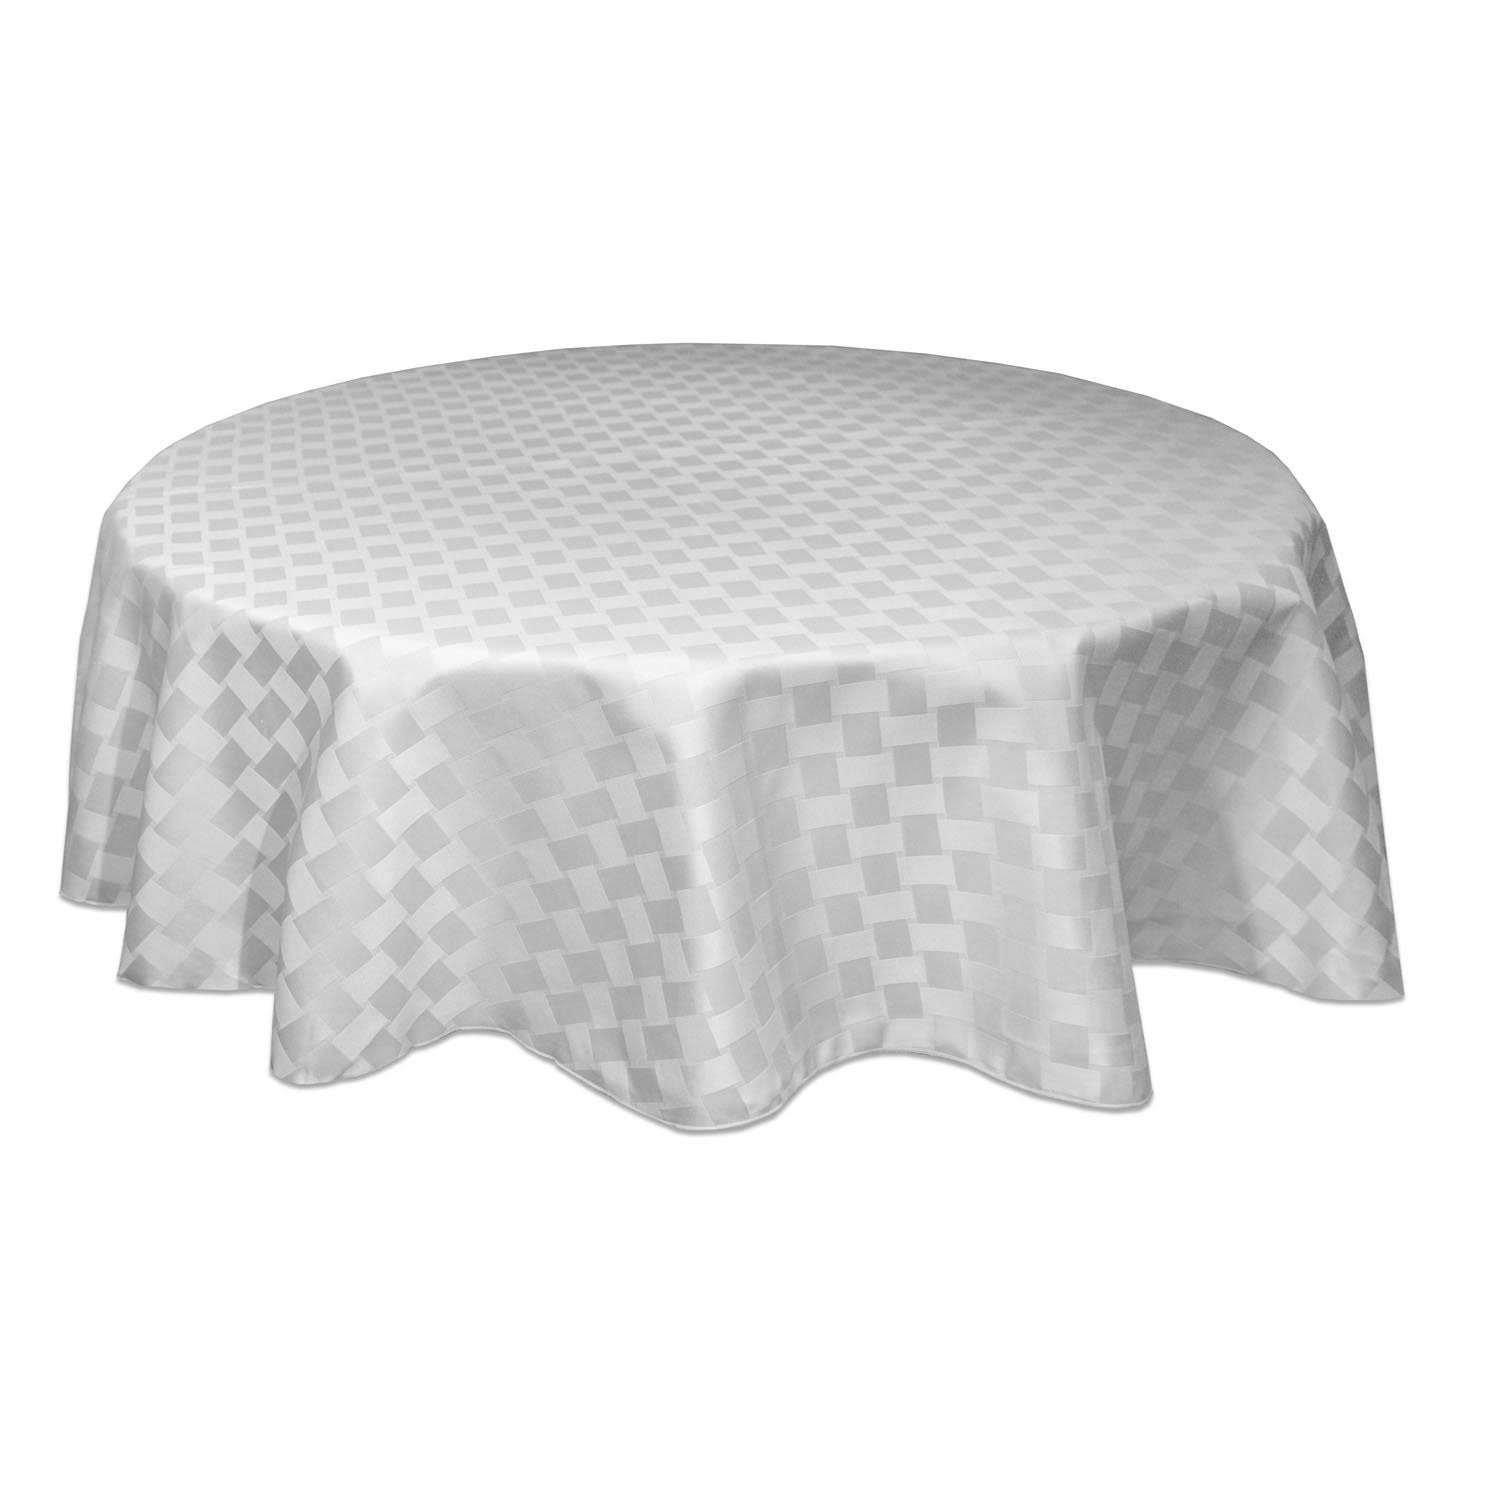 "Bardwil Reflections Spill Proof Oval Tablecloth - White, 60"" X 84"""